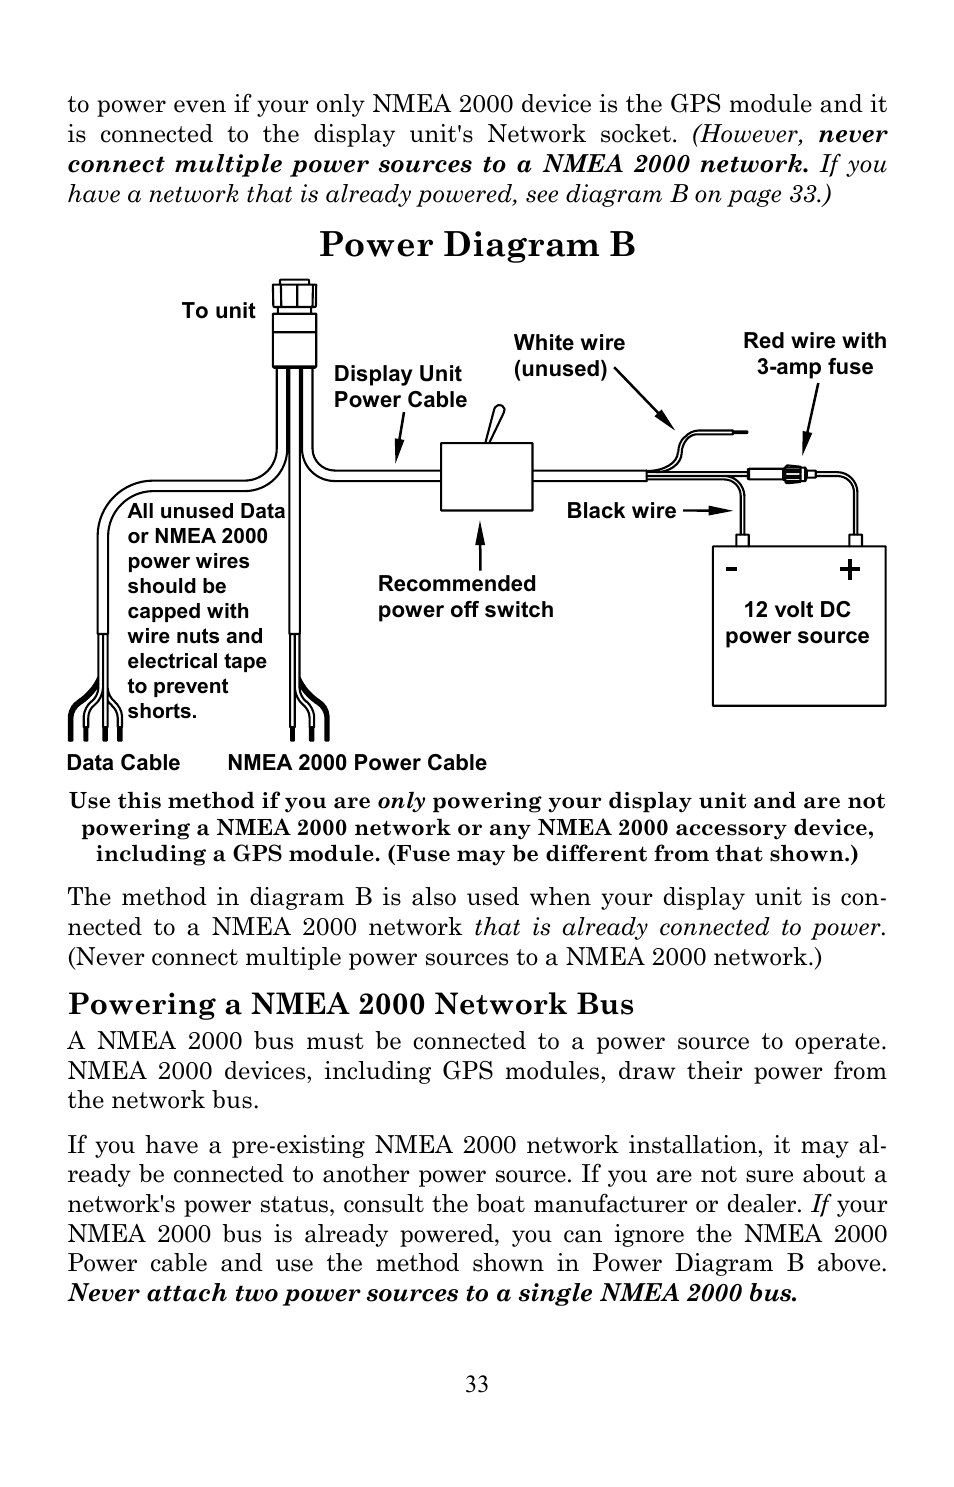 Lowrance Lms 520 Wiring Diagram Simple Diagrams Power B Powering A Nmea 2000 Network Bus Data Mapping